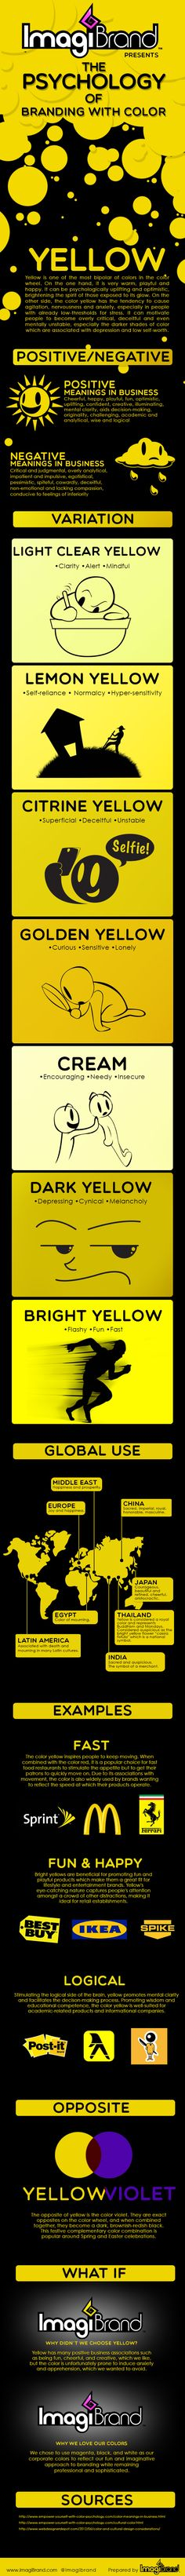 Positive and negative meanings of the color yellow.